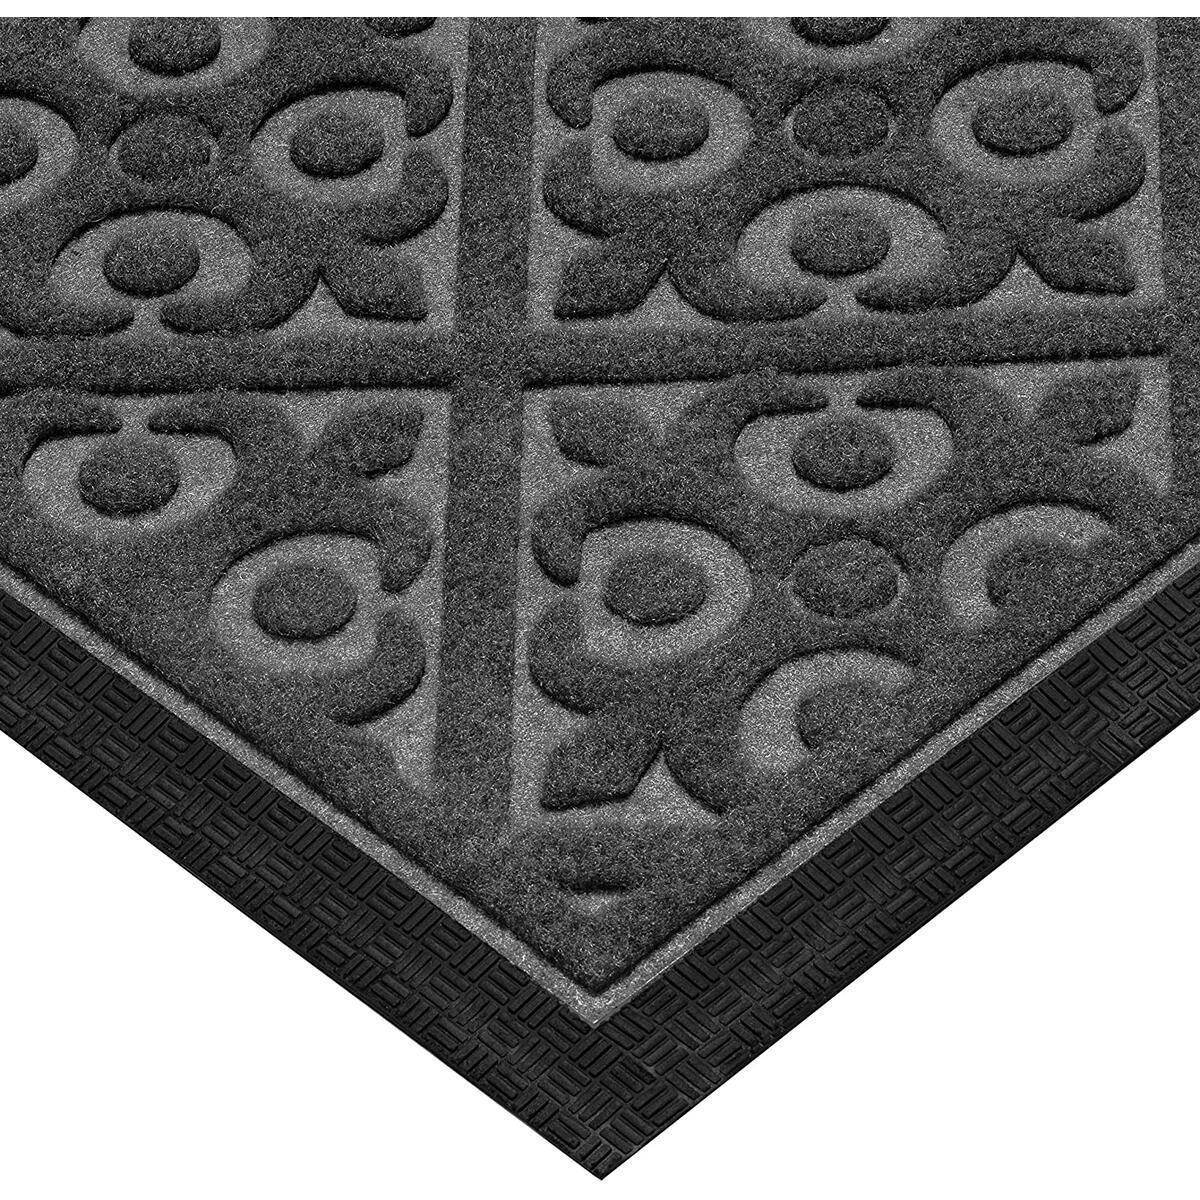 Door Mat Indoor Outdoor - Ideal Welcome mat or Front Door Mats - Entry Rug for Inside Outside - Non Slip Slim Profile Doormat - Traps Dirt Patio Grass Snow Mud Grit - Size 17.5 x 27 Inches - Gray